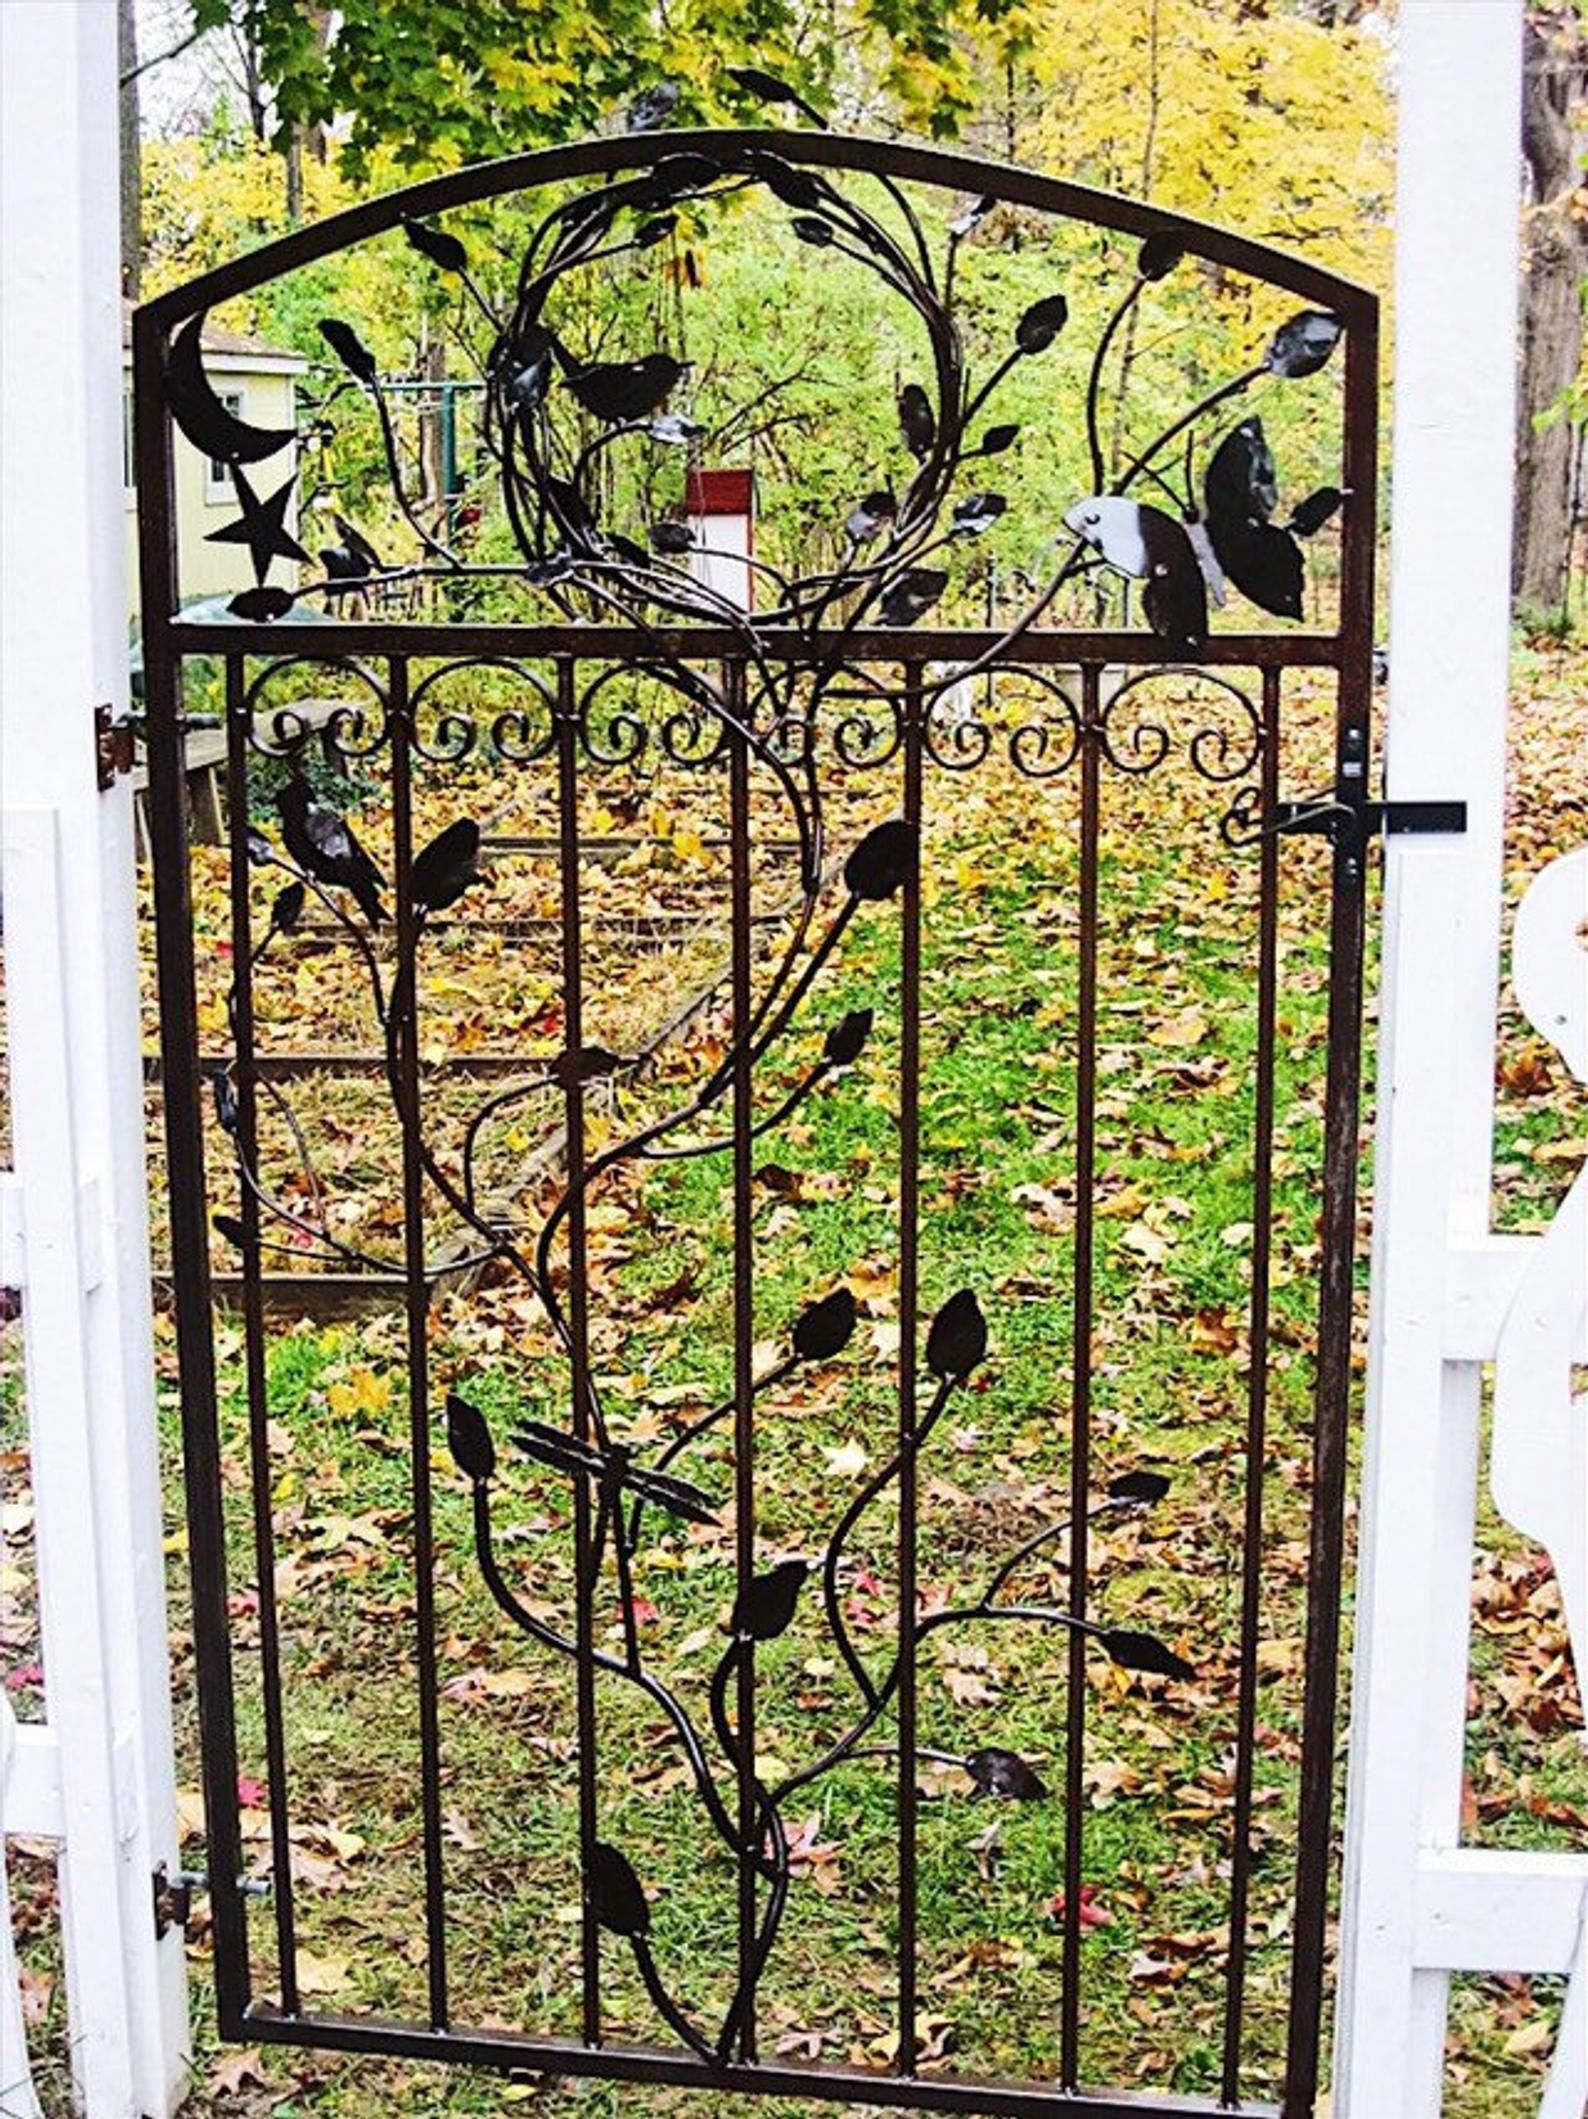 Metal Gate Garden Gate Single Iron Gate In 2020 Garden Gate Design Iron Garden Gates Metal Garden Gates